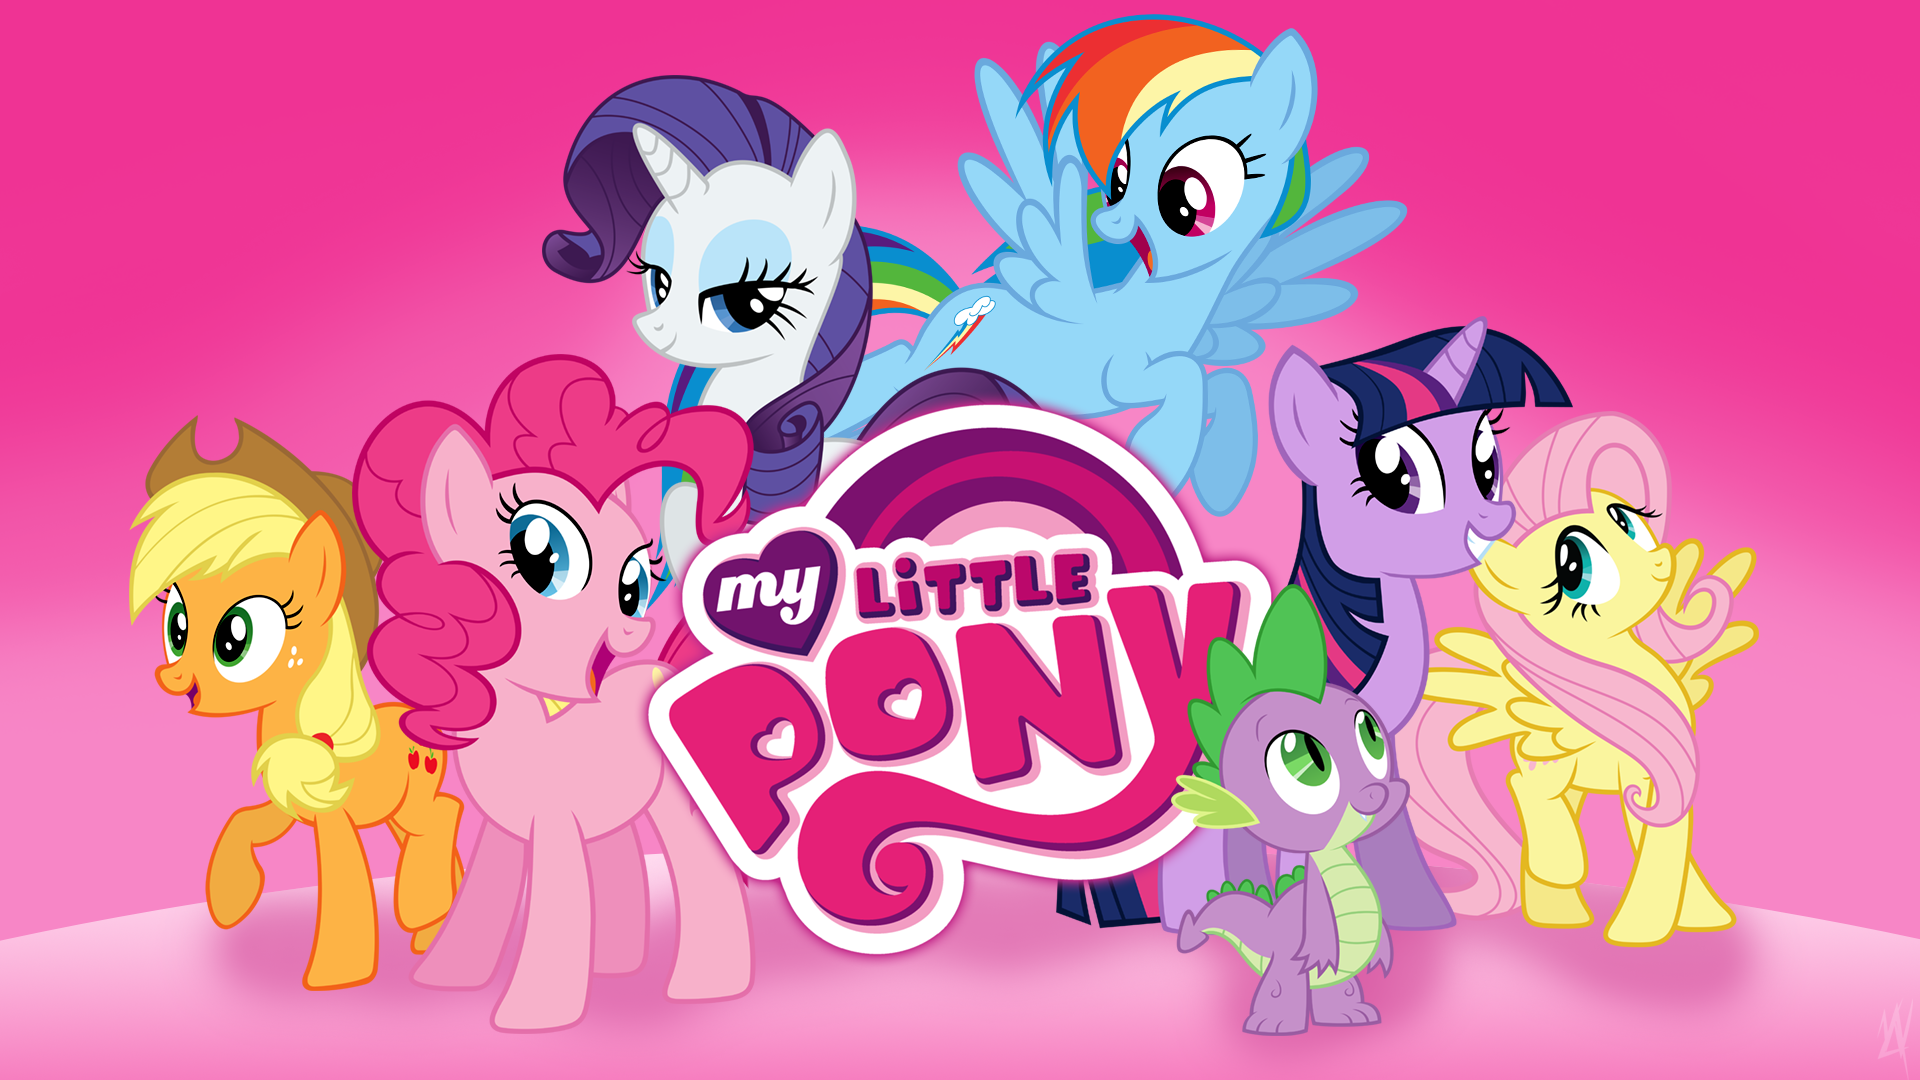 My Little Pony Wallpaper 1920x1080 44471